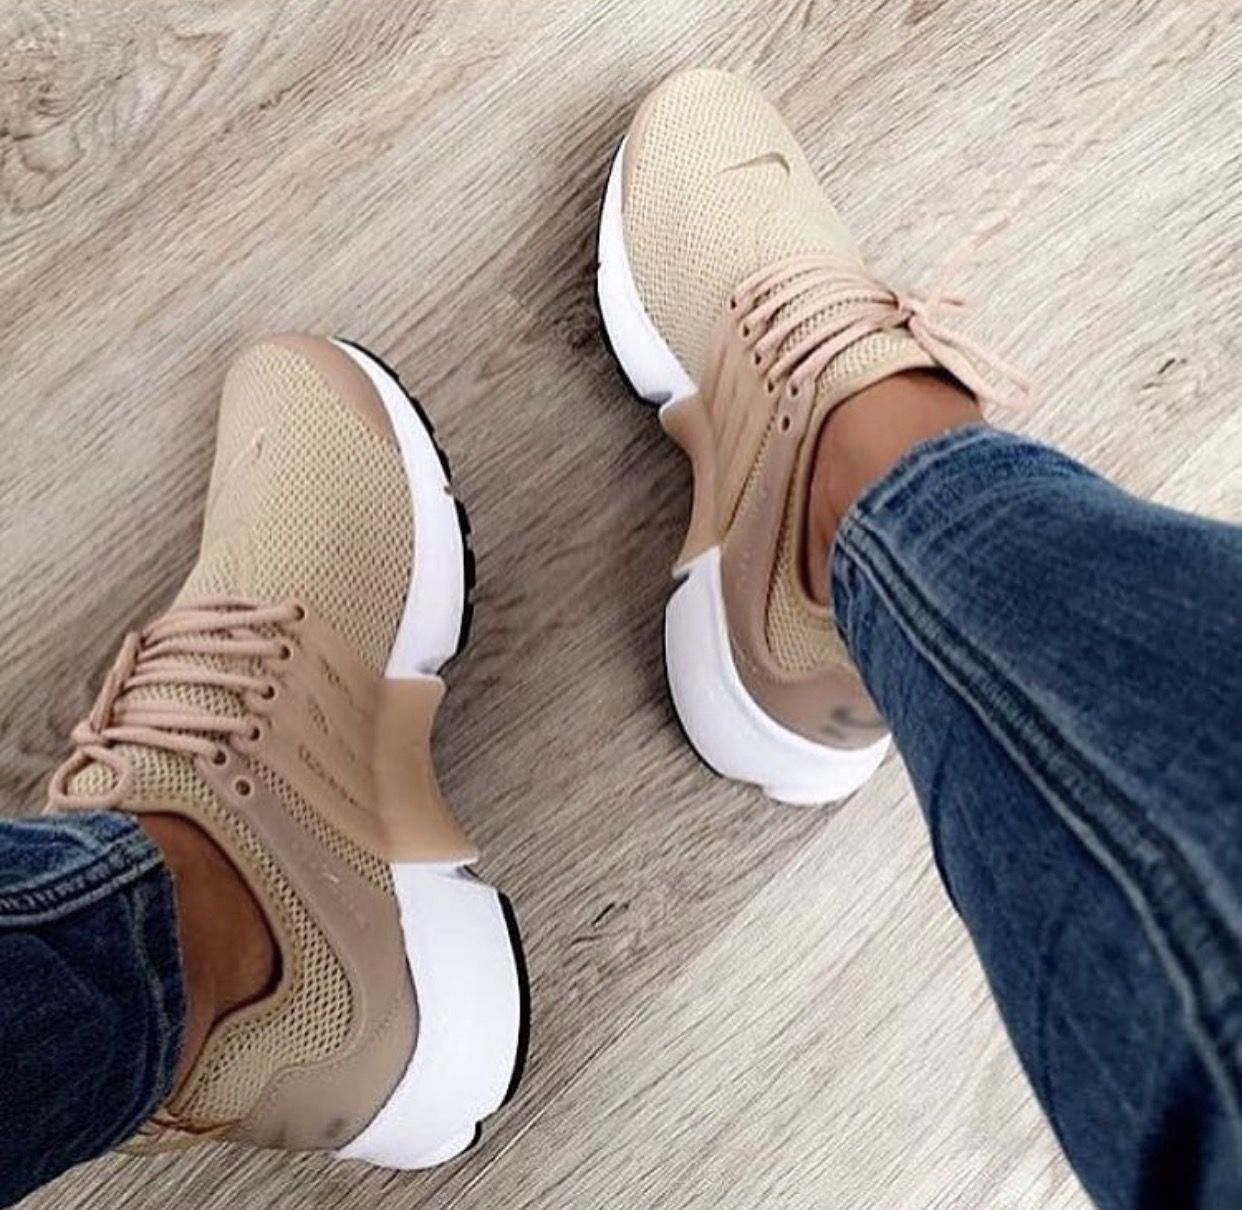 Pinterest : whywhyn0t (With images) | Instagram shoes